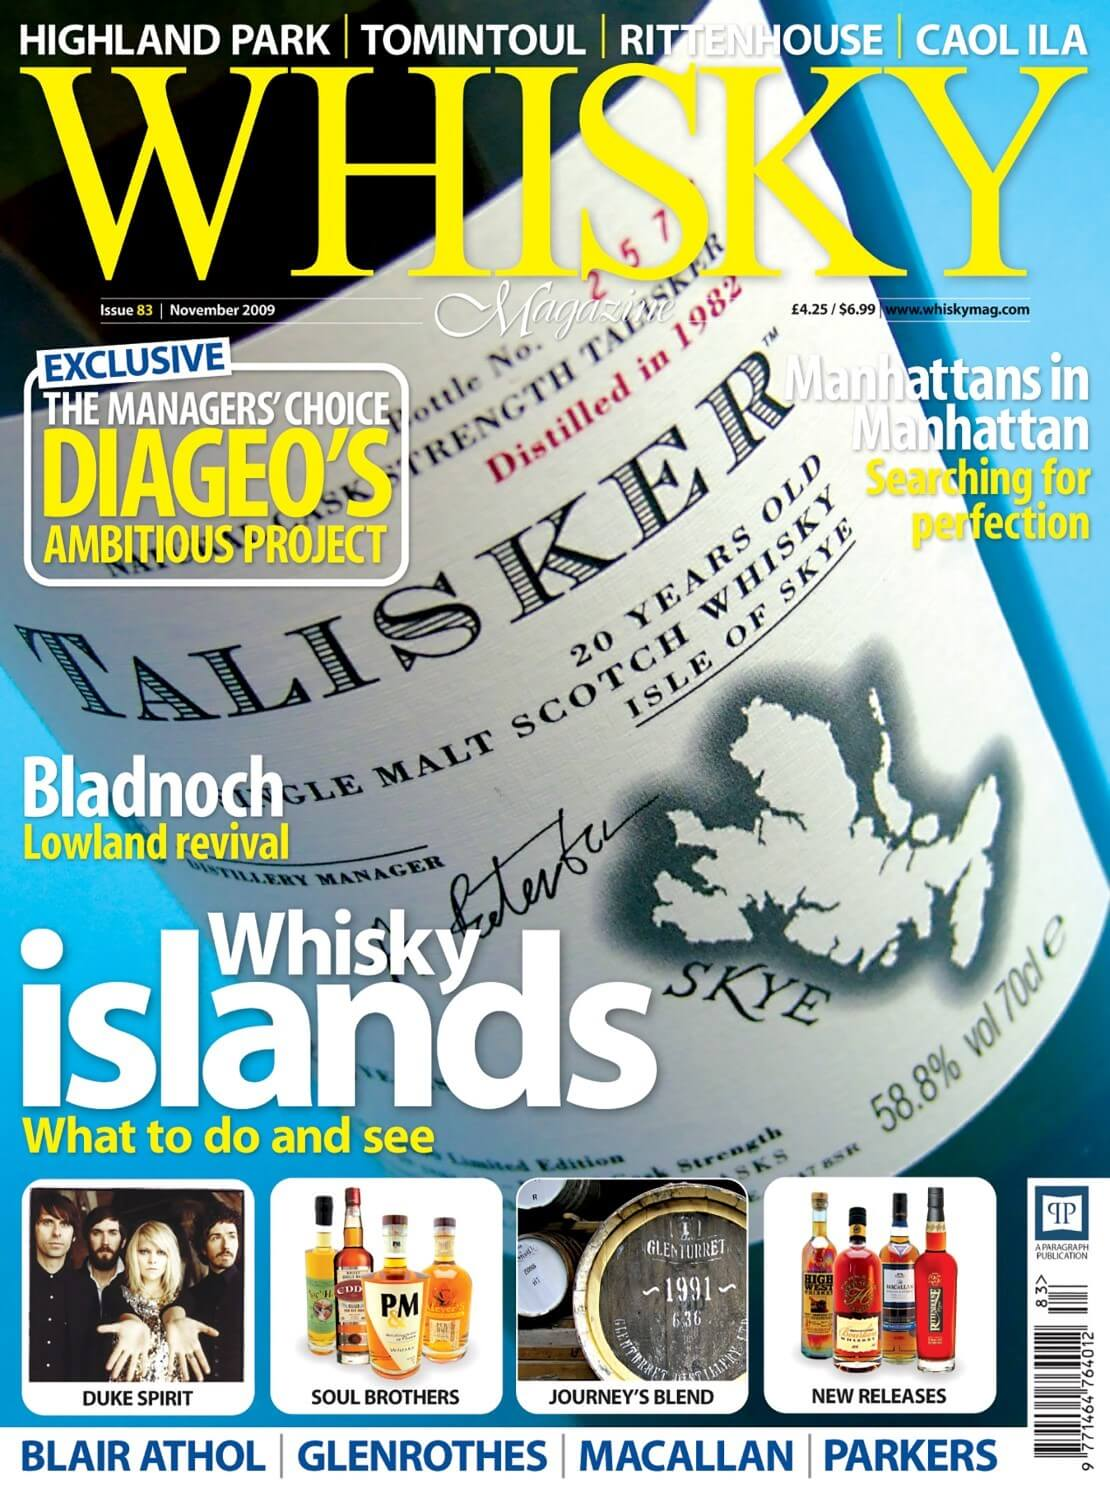 Exclusive - Diageo's Ambitious Project Bladnoch Manhattans in Manhattan Whisky Islands Blair Athol  Glenrothes Macallan